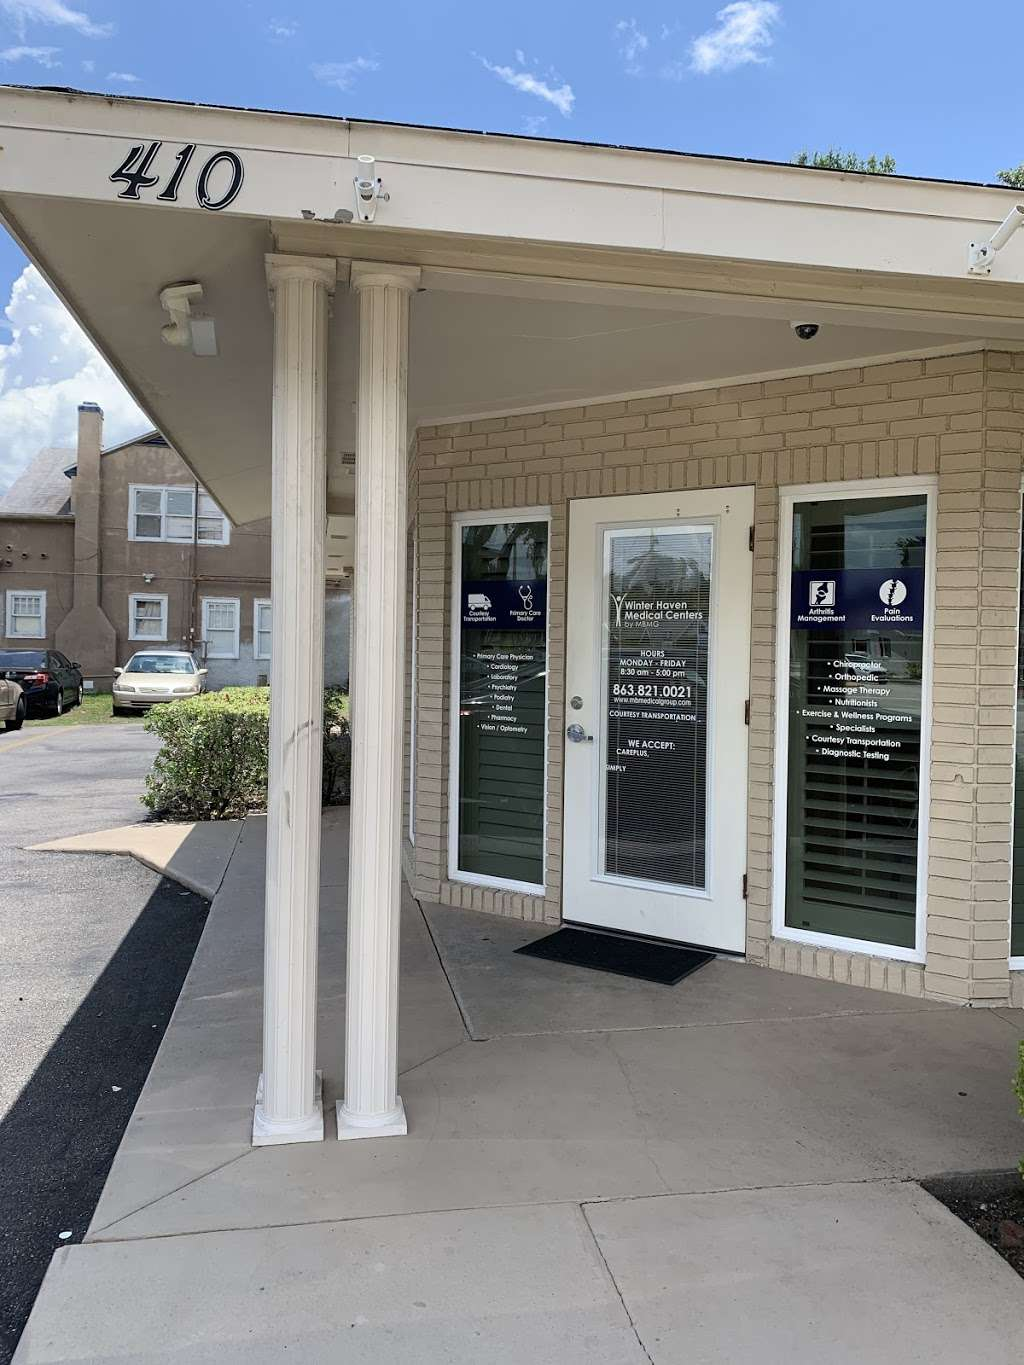 Winter Haven Medical Centers by MBMG - doctor  | Photo 1 of 3 | Address: 410 1st St S, Winter Haven, FL 33880, USA | Phone: (863) 821-0021